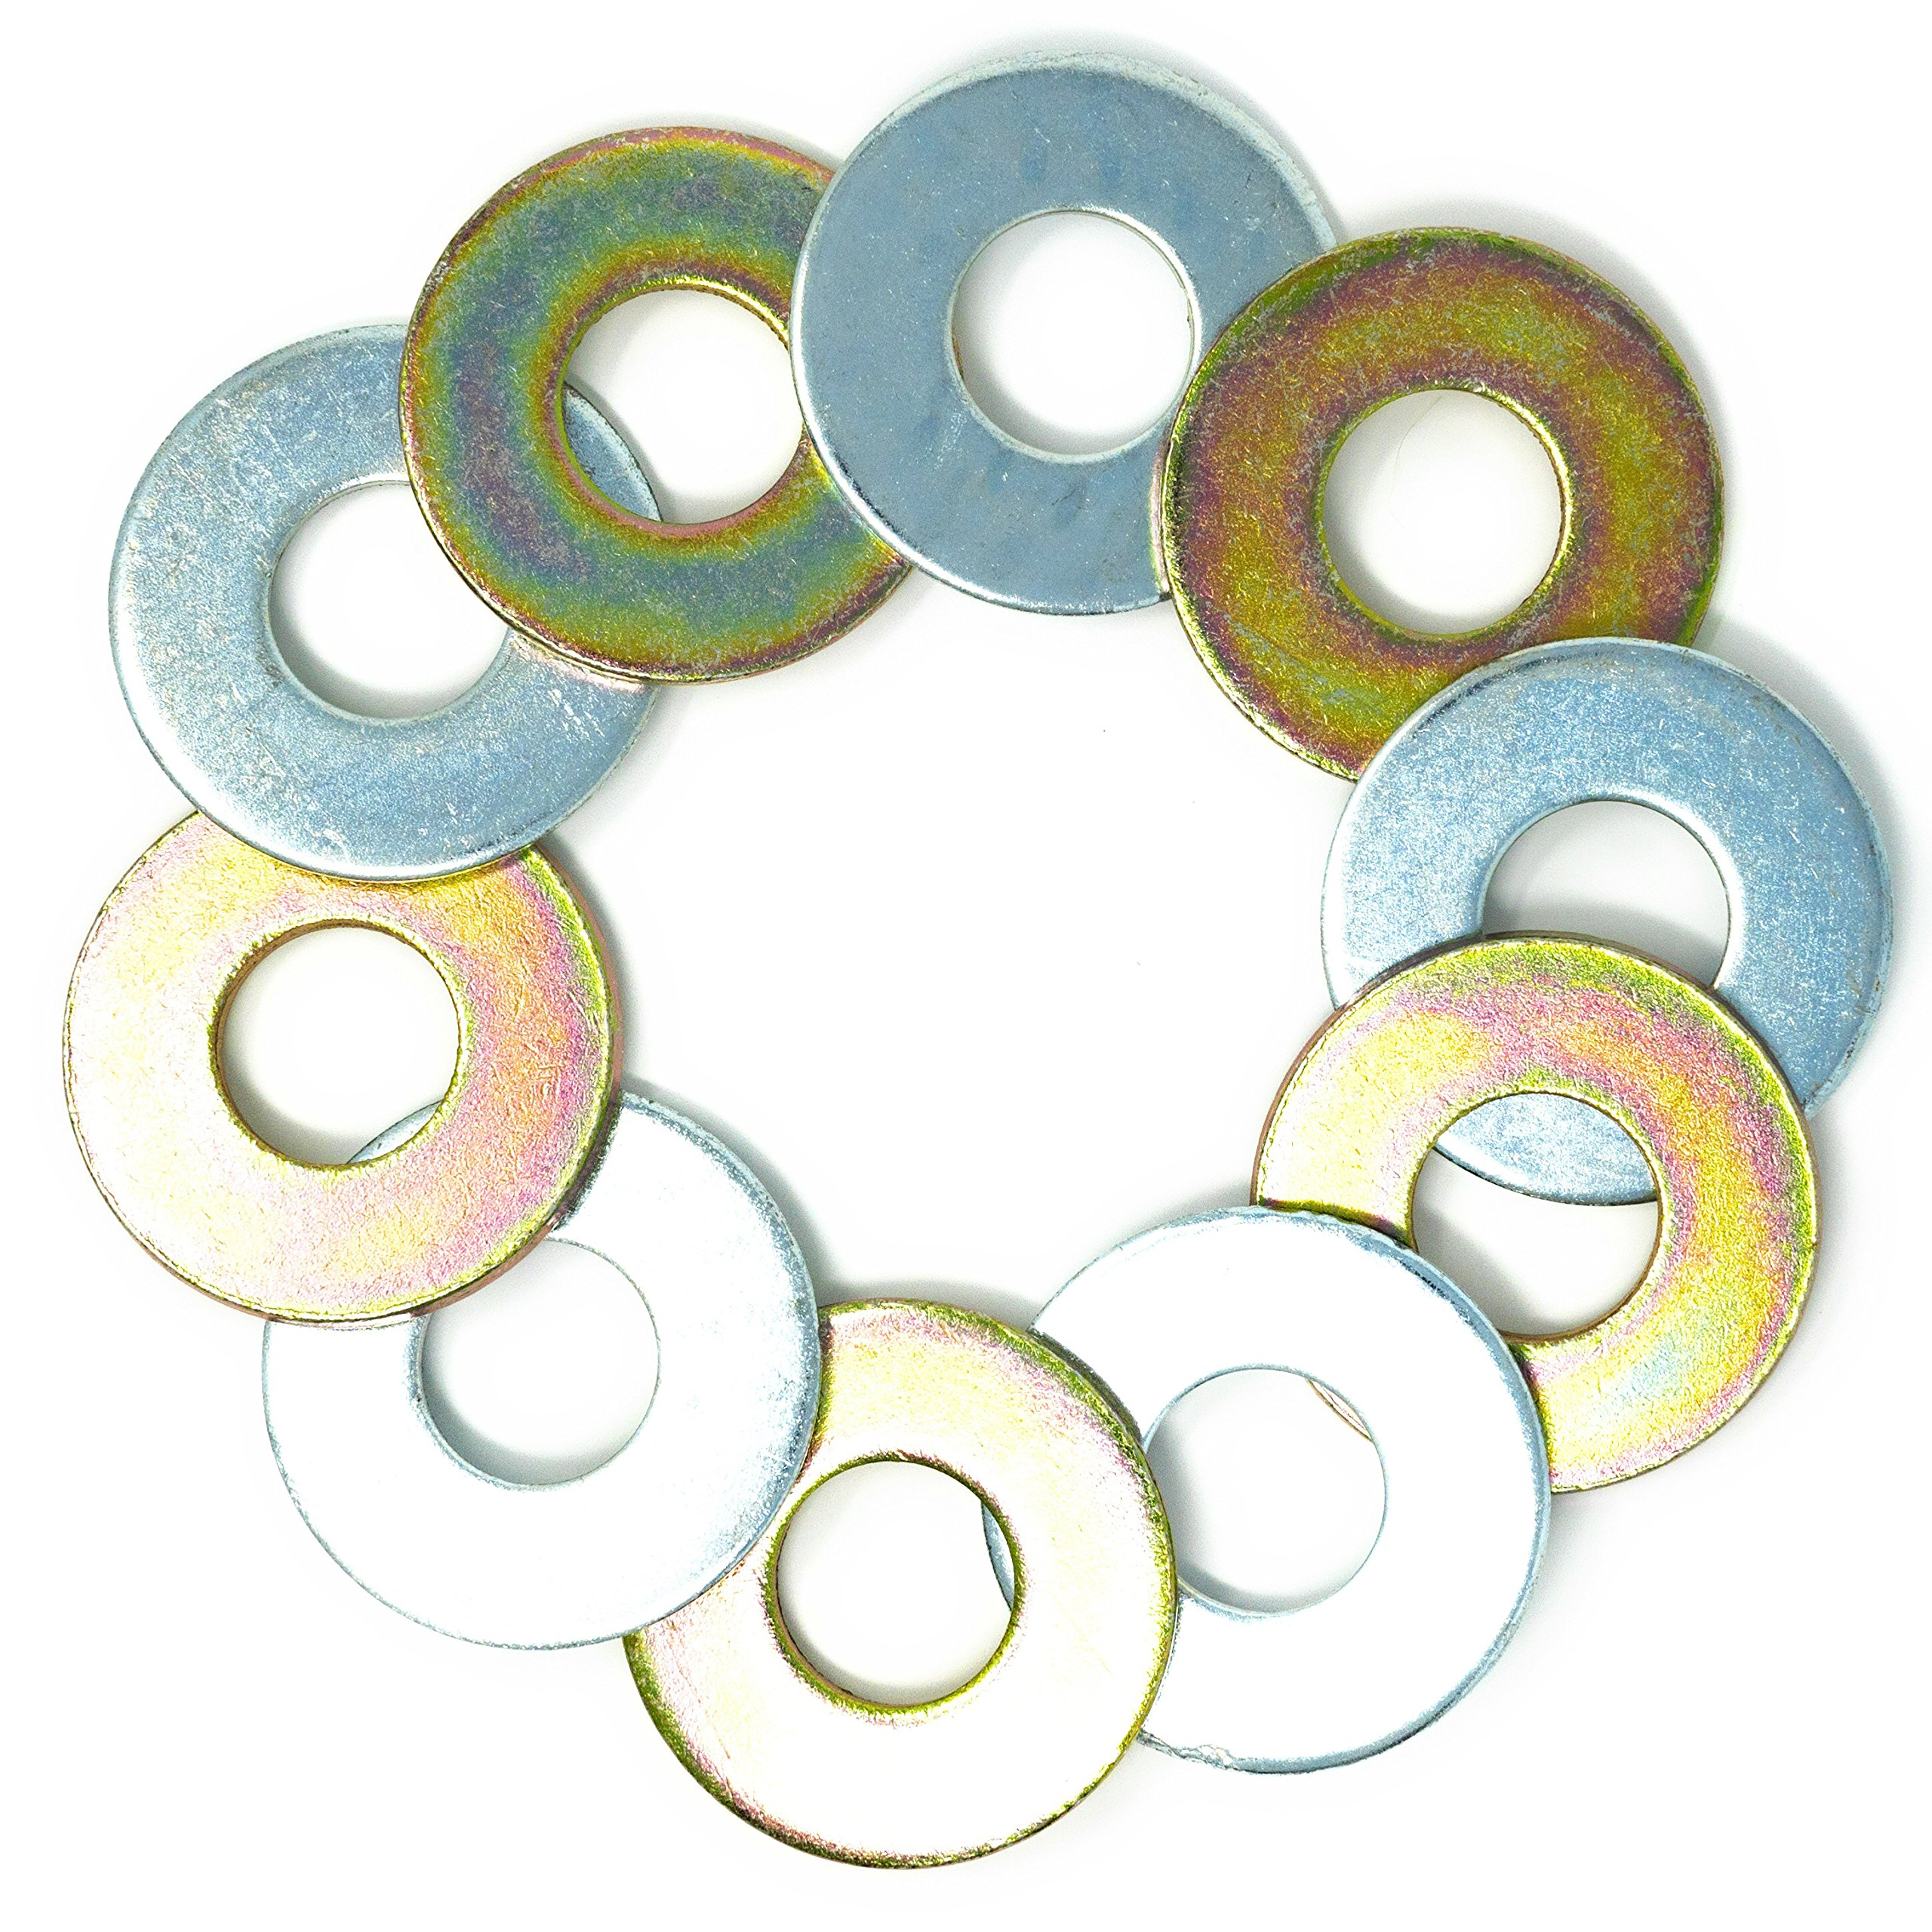 5 Yellow/5 Silver Replacement 2-1/2'' Washer Toss Pitching Game Washers (Zinc Coated) by AirstreamIT